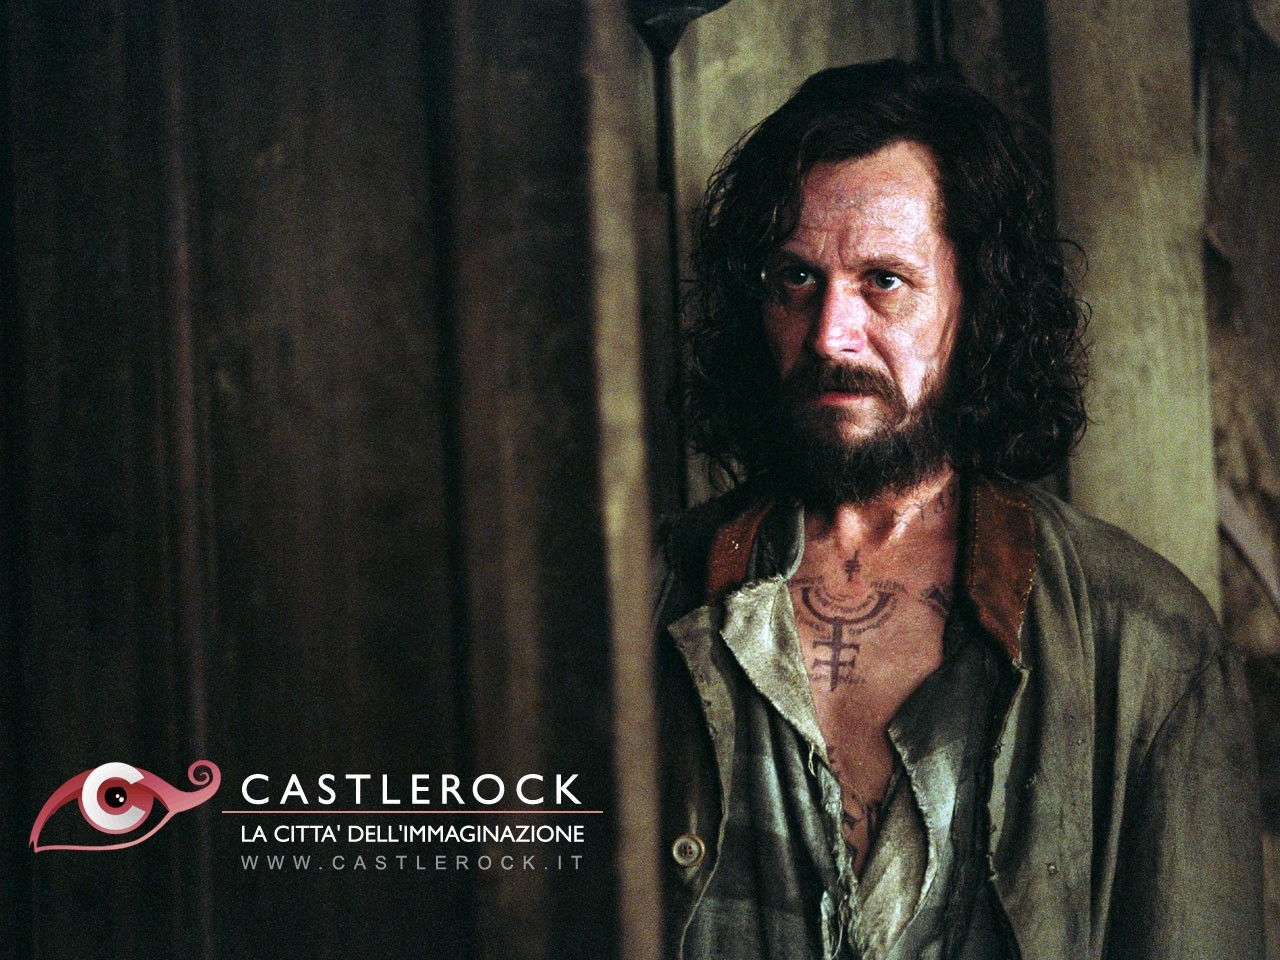 Wallpaper del film Harry Potter e il prigioniero di Azkaban con il fascinoso Gary Oldman